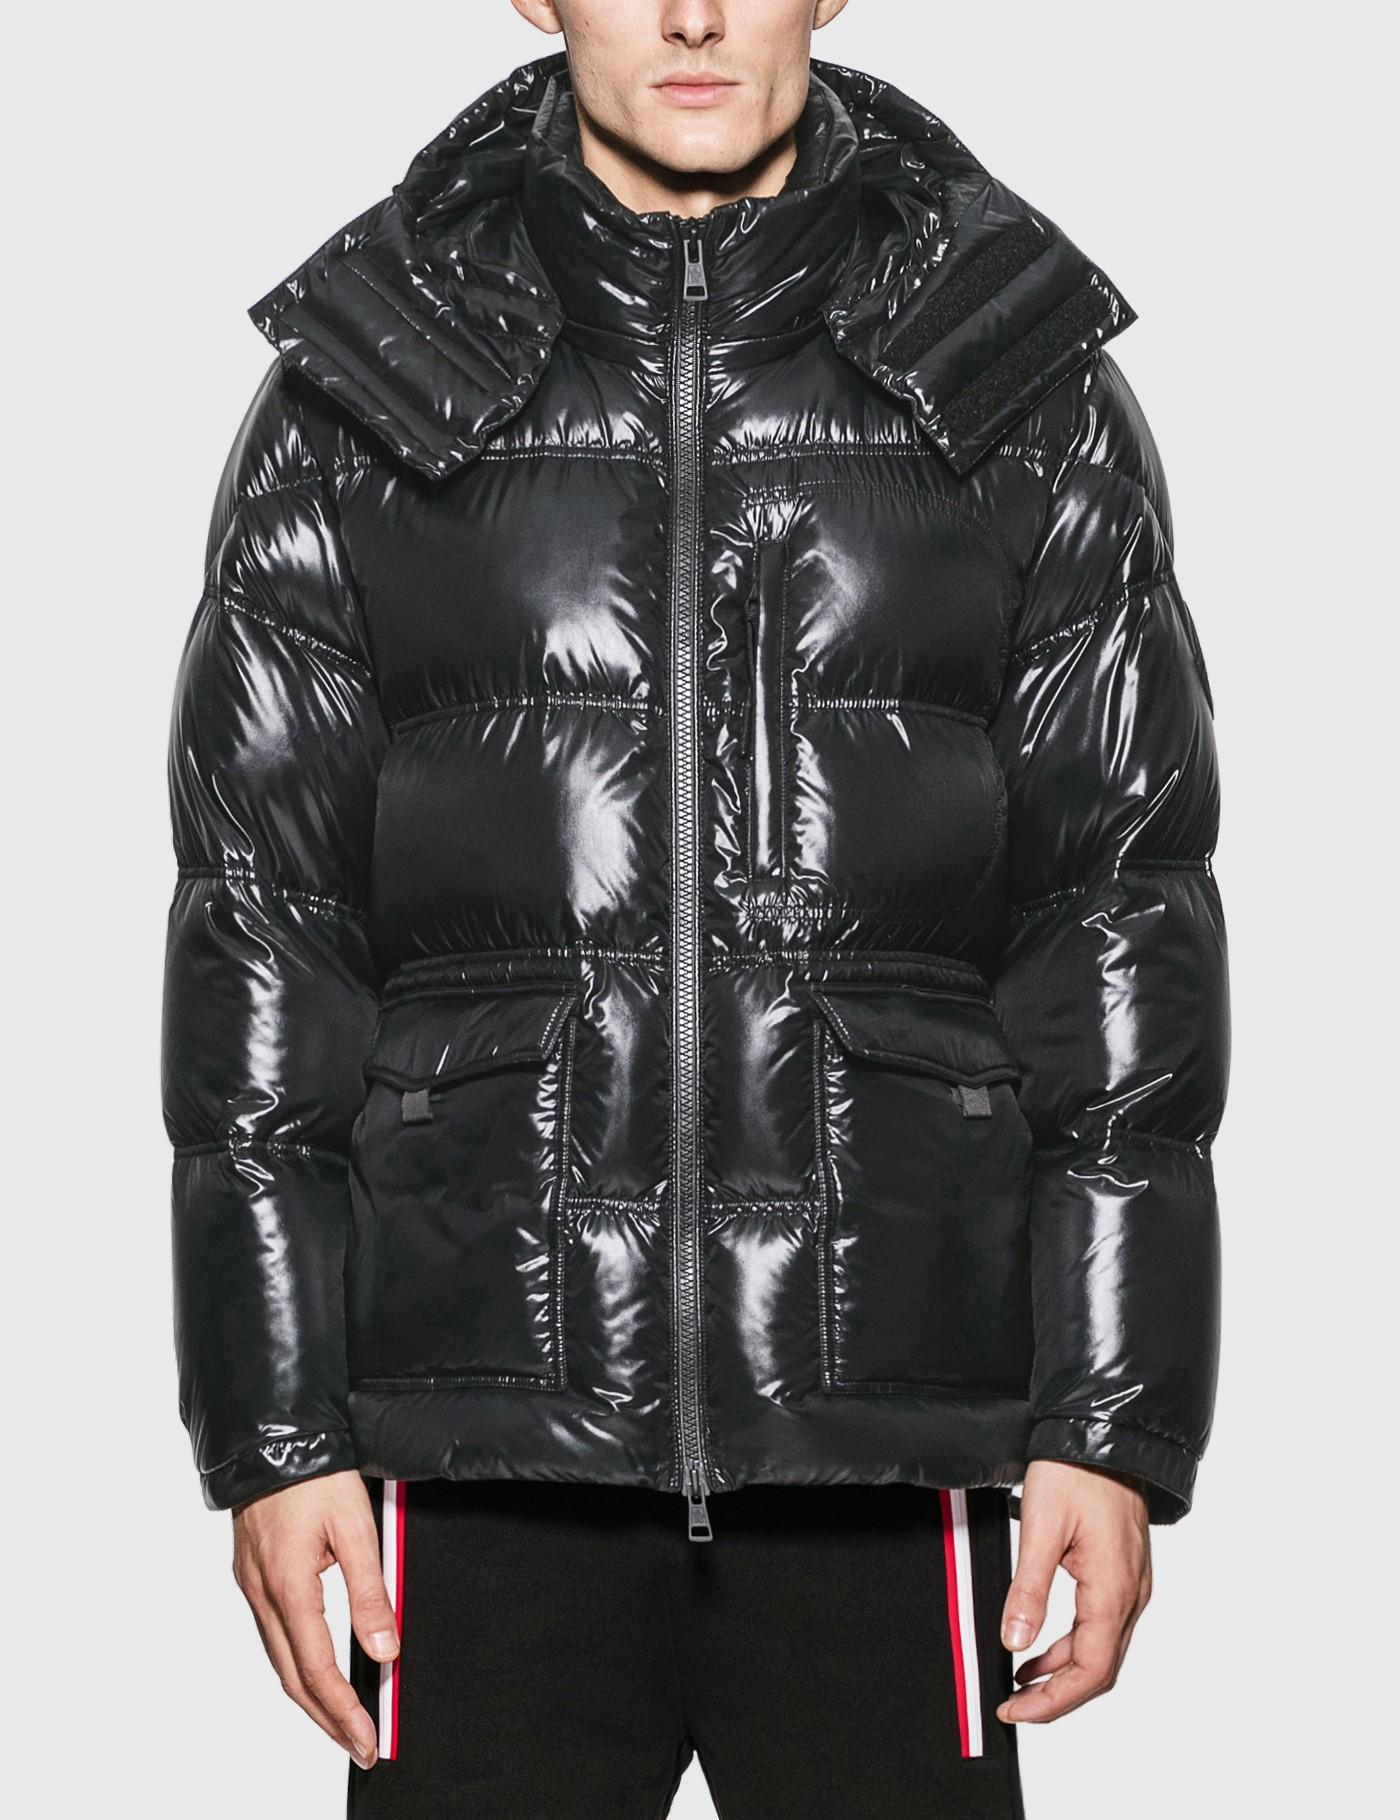 Moncler Genius Downs 1952 X UNDEFEATED TETHYS JACKET